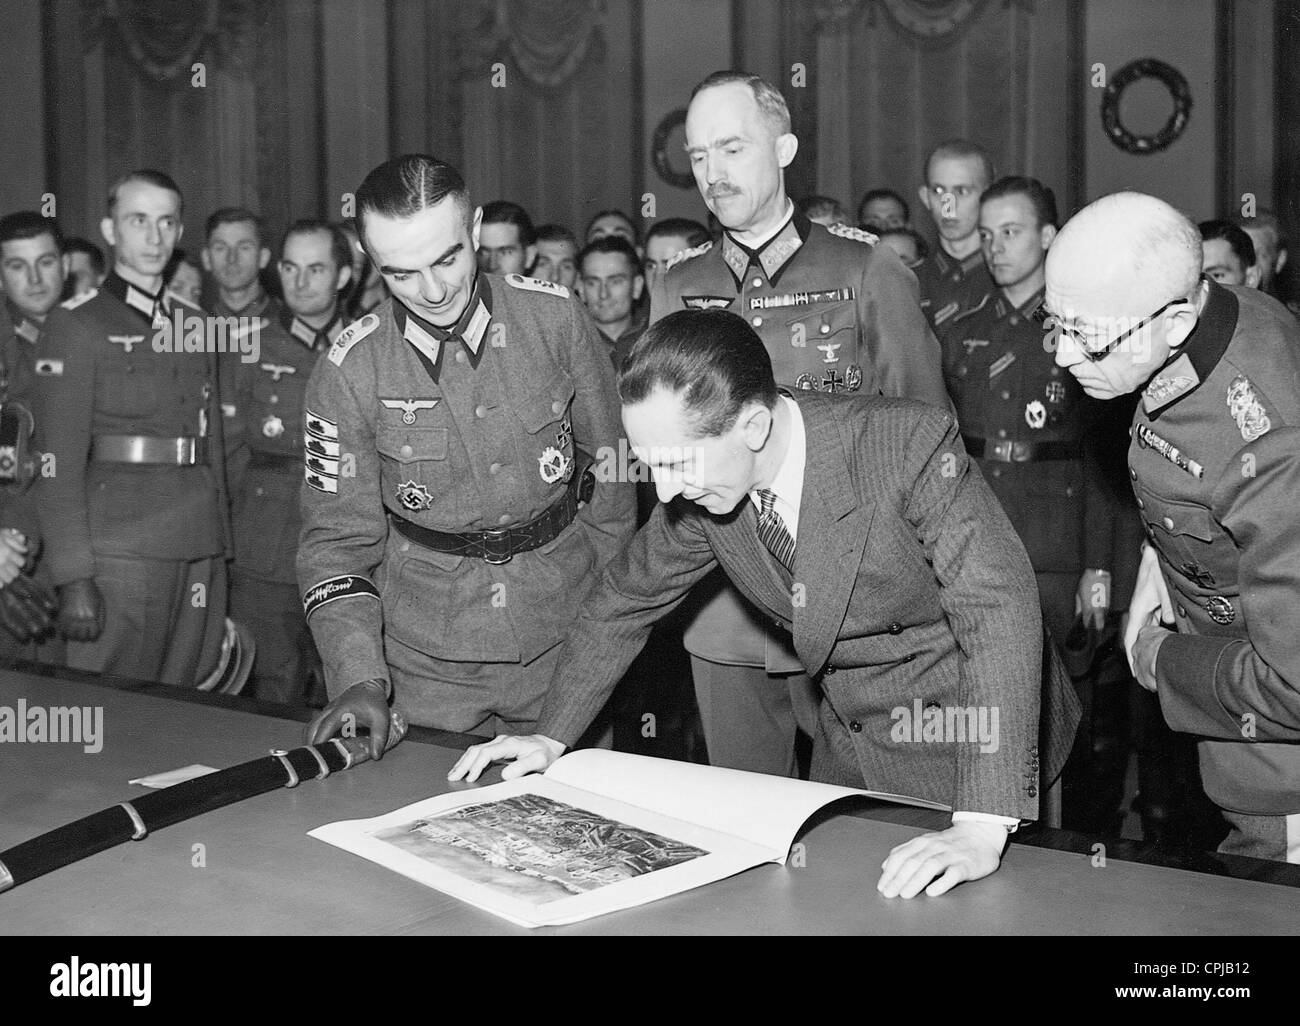 Joseph Goebbels and Paul von Hase with German soldiers, 1942 - Stock Image